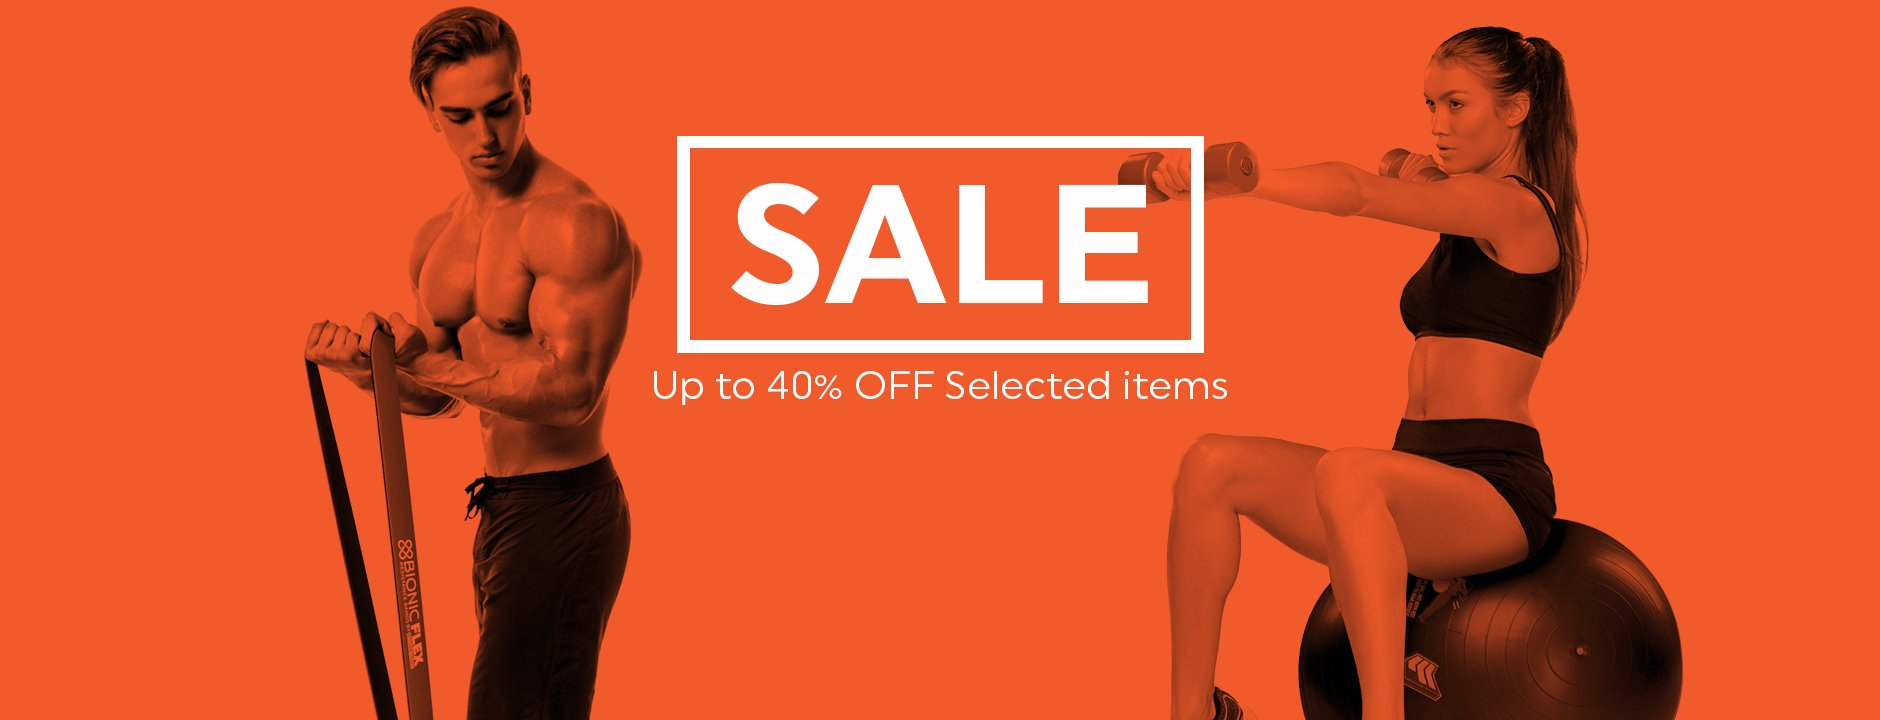 Epitomie Fitness Sale